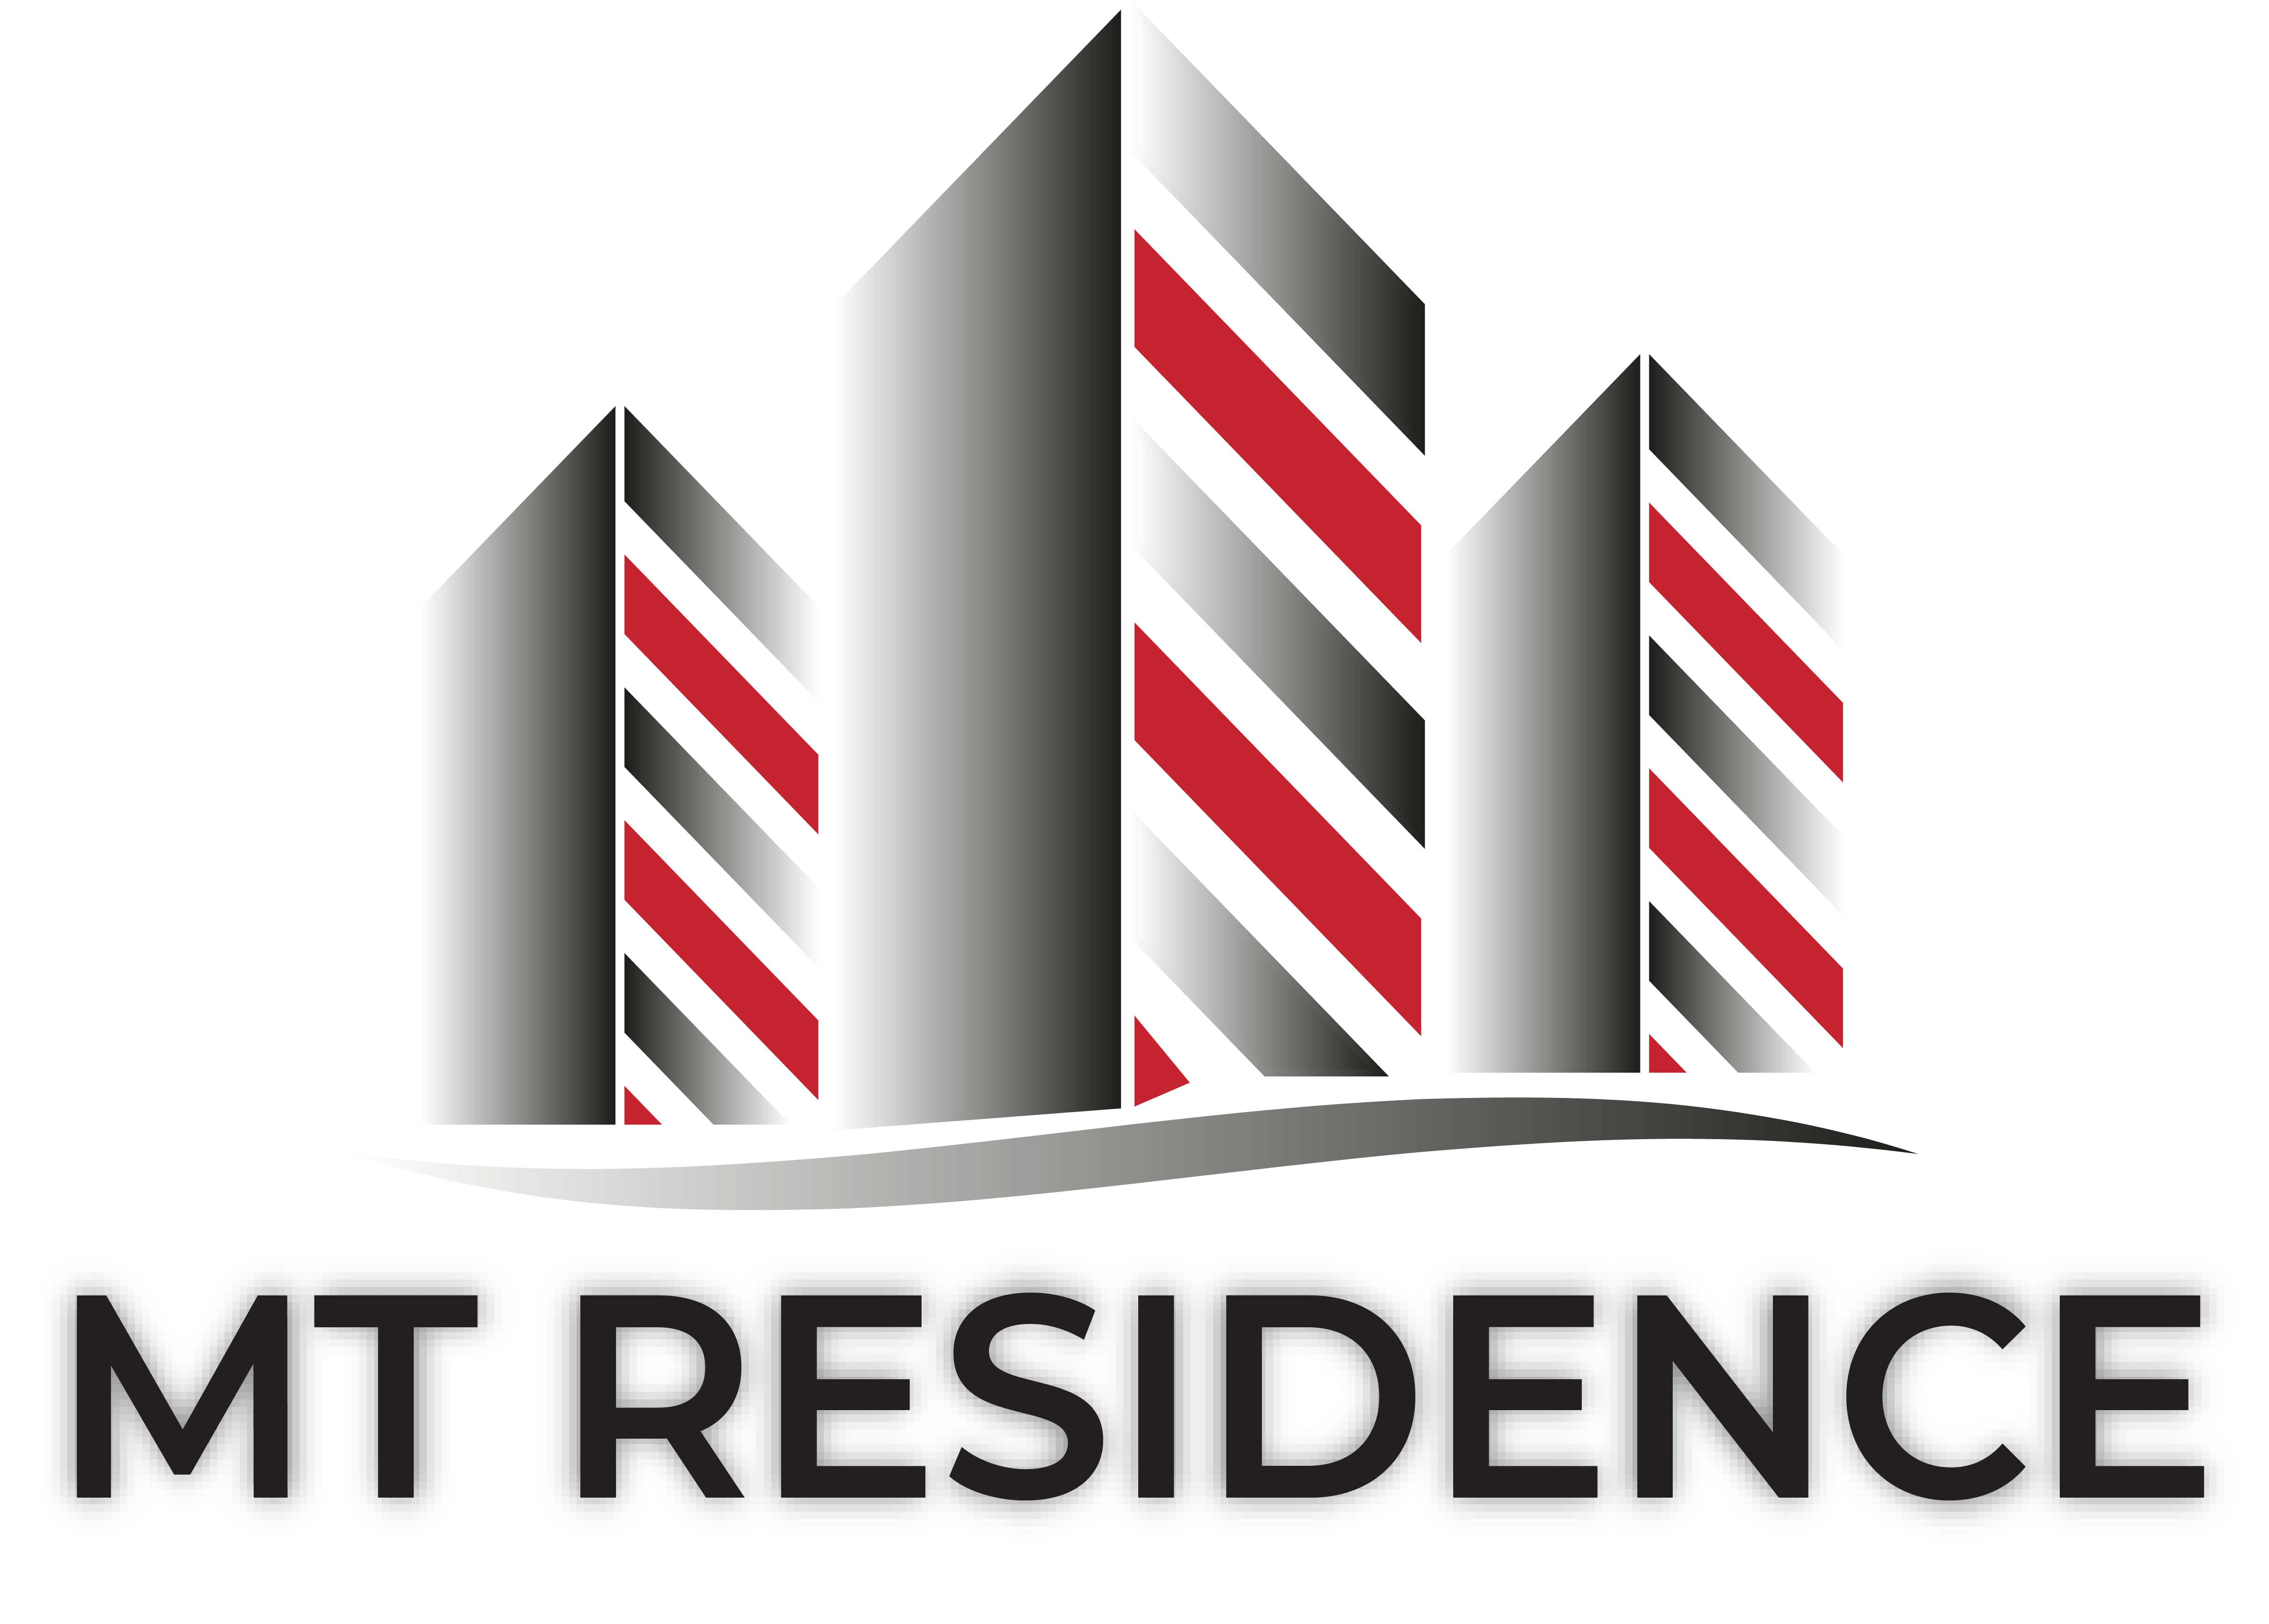 Proiect: MT Residence